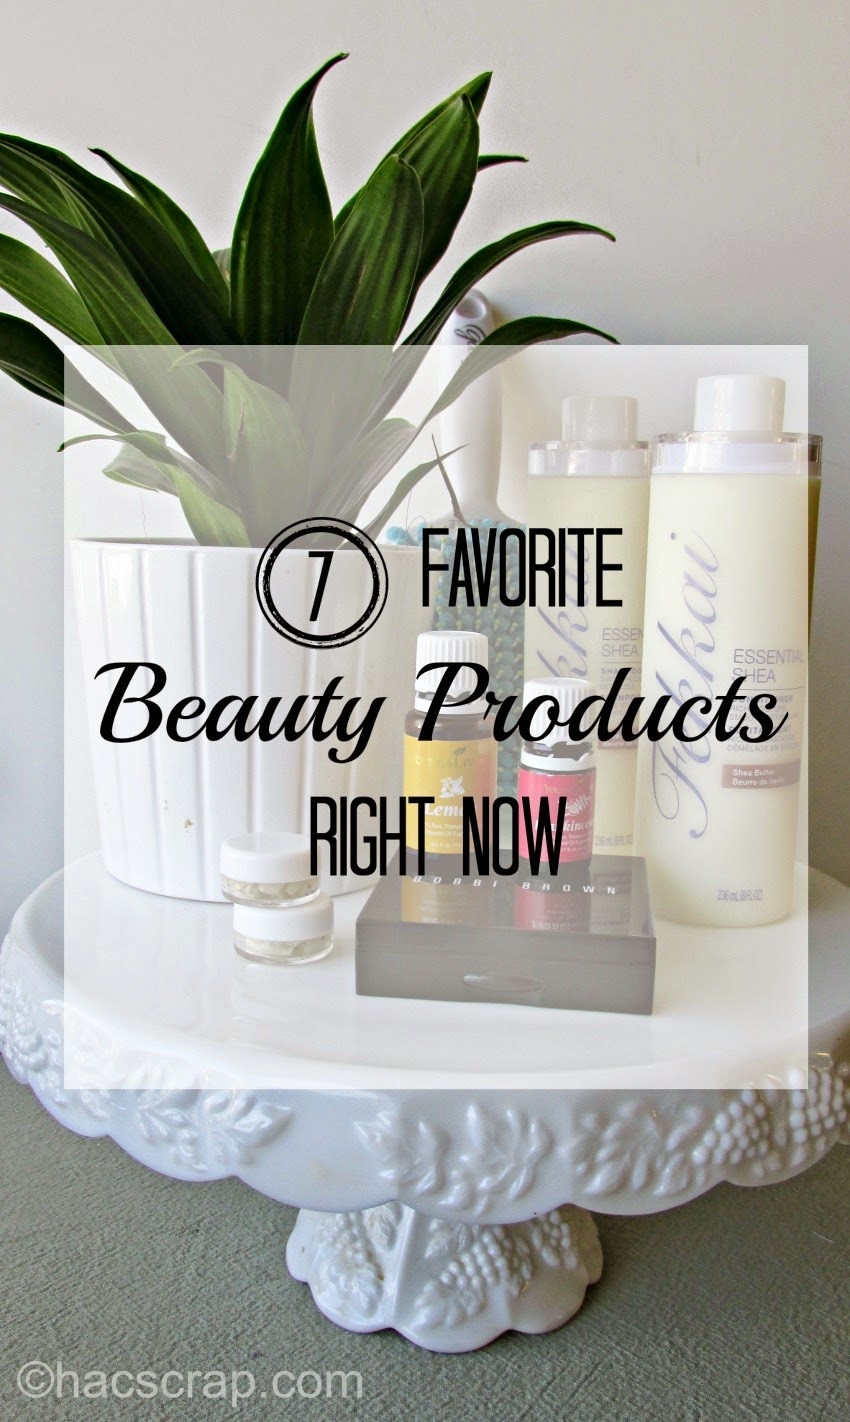 The 7 fabulous beauty products to try right now!